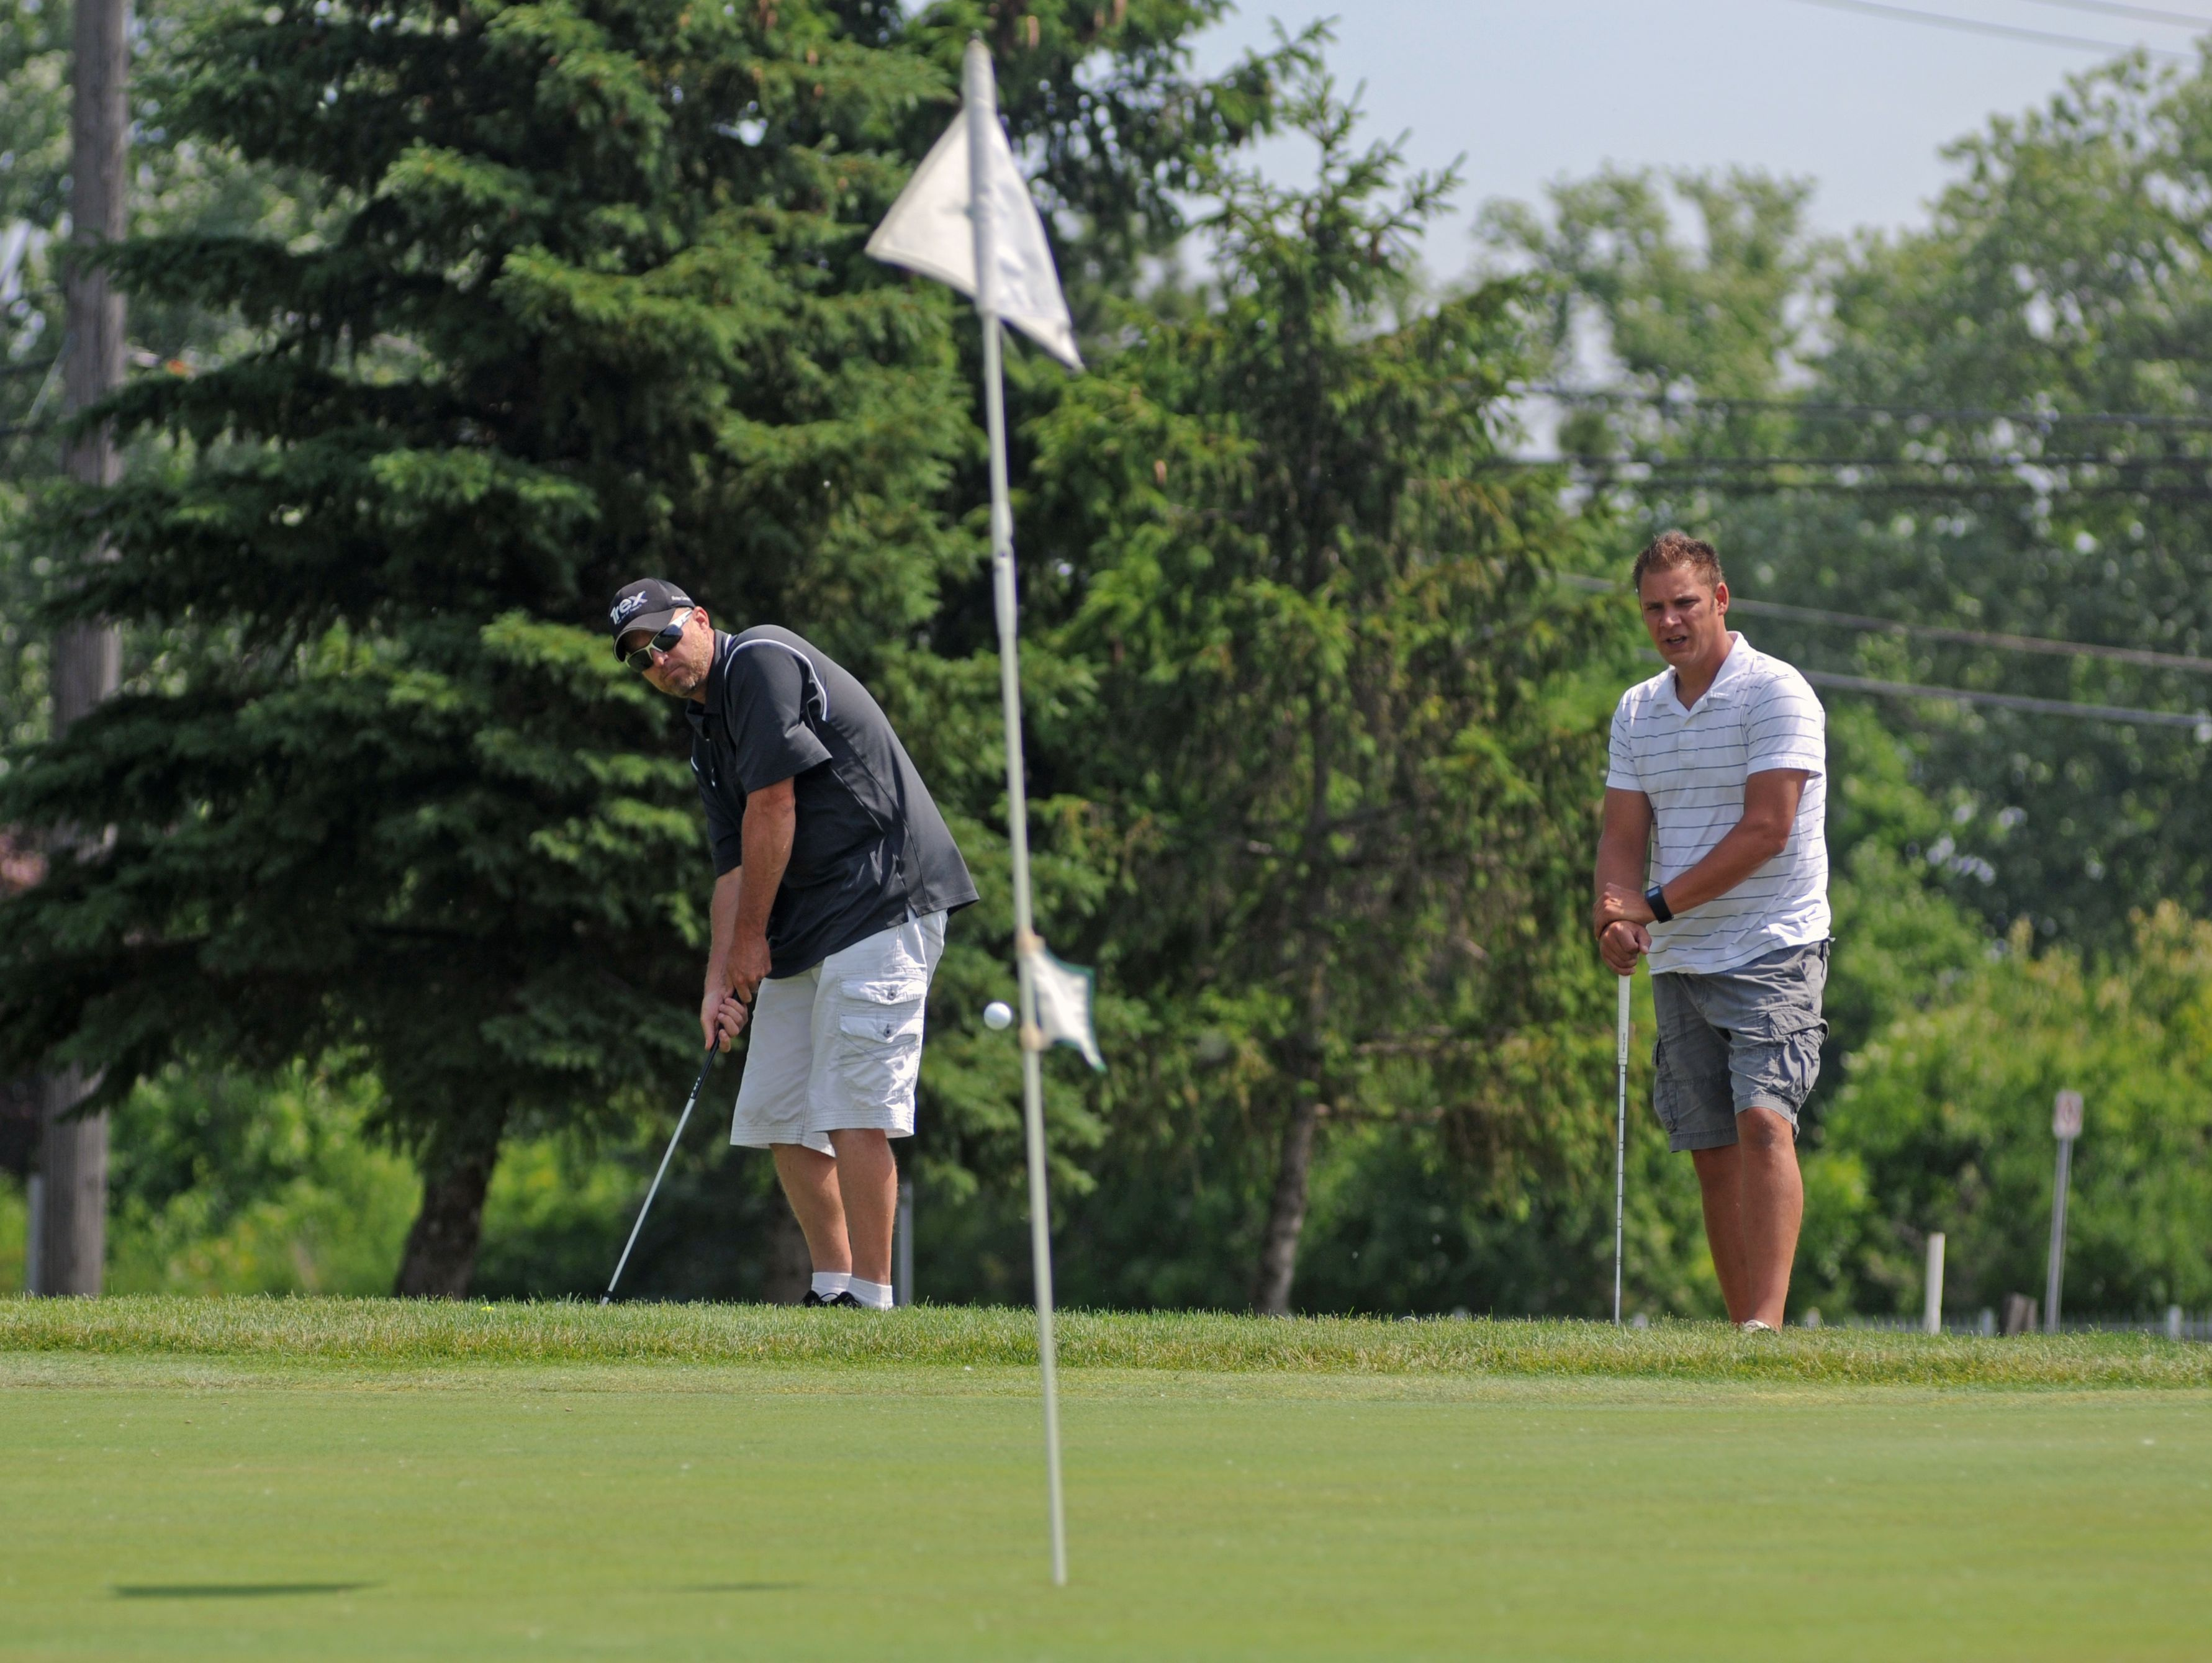 Scott Schoof, of Richmond, chips on as Matt Puwal, of Columbus Township watches Monday, June 20, during the Lelito Legacy Golf Outing at St. Clair Golf Cub.